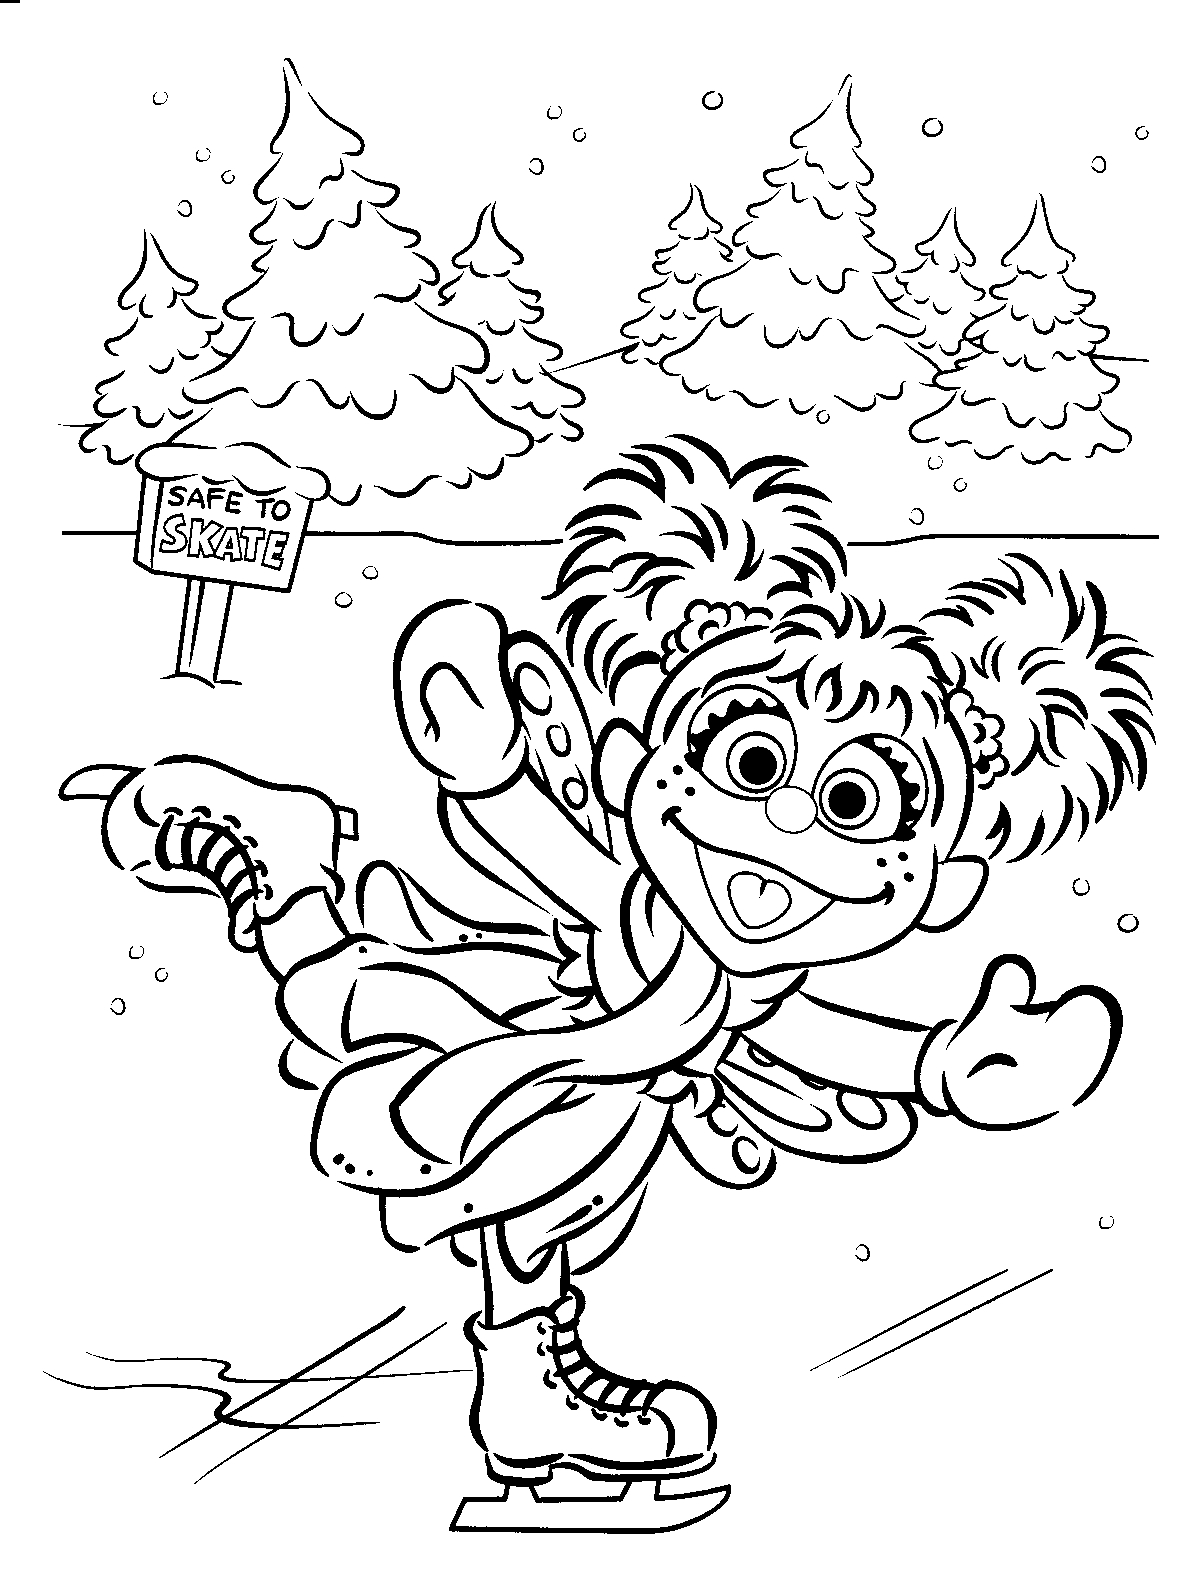 sesame street colouring pages to print